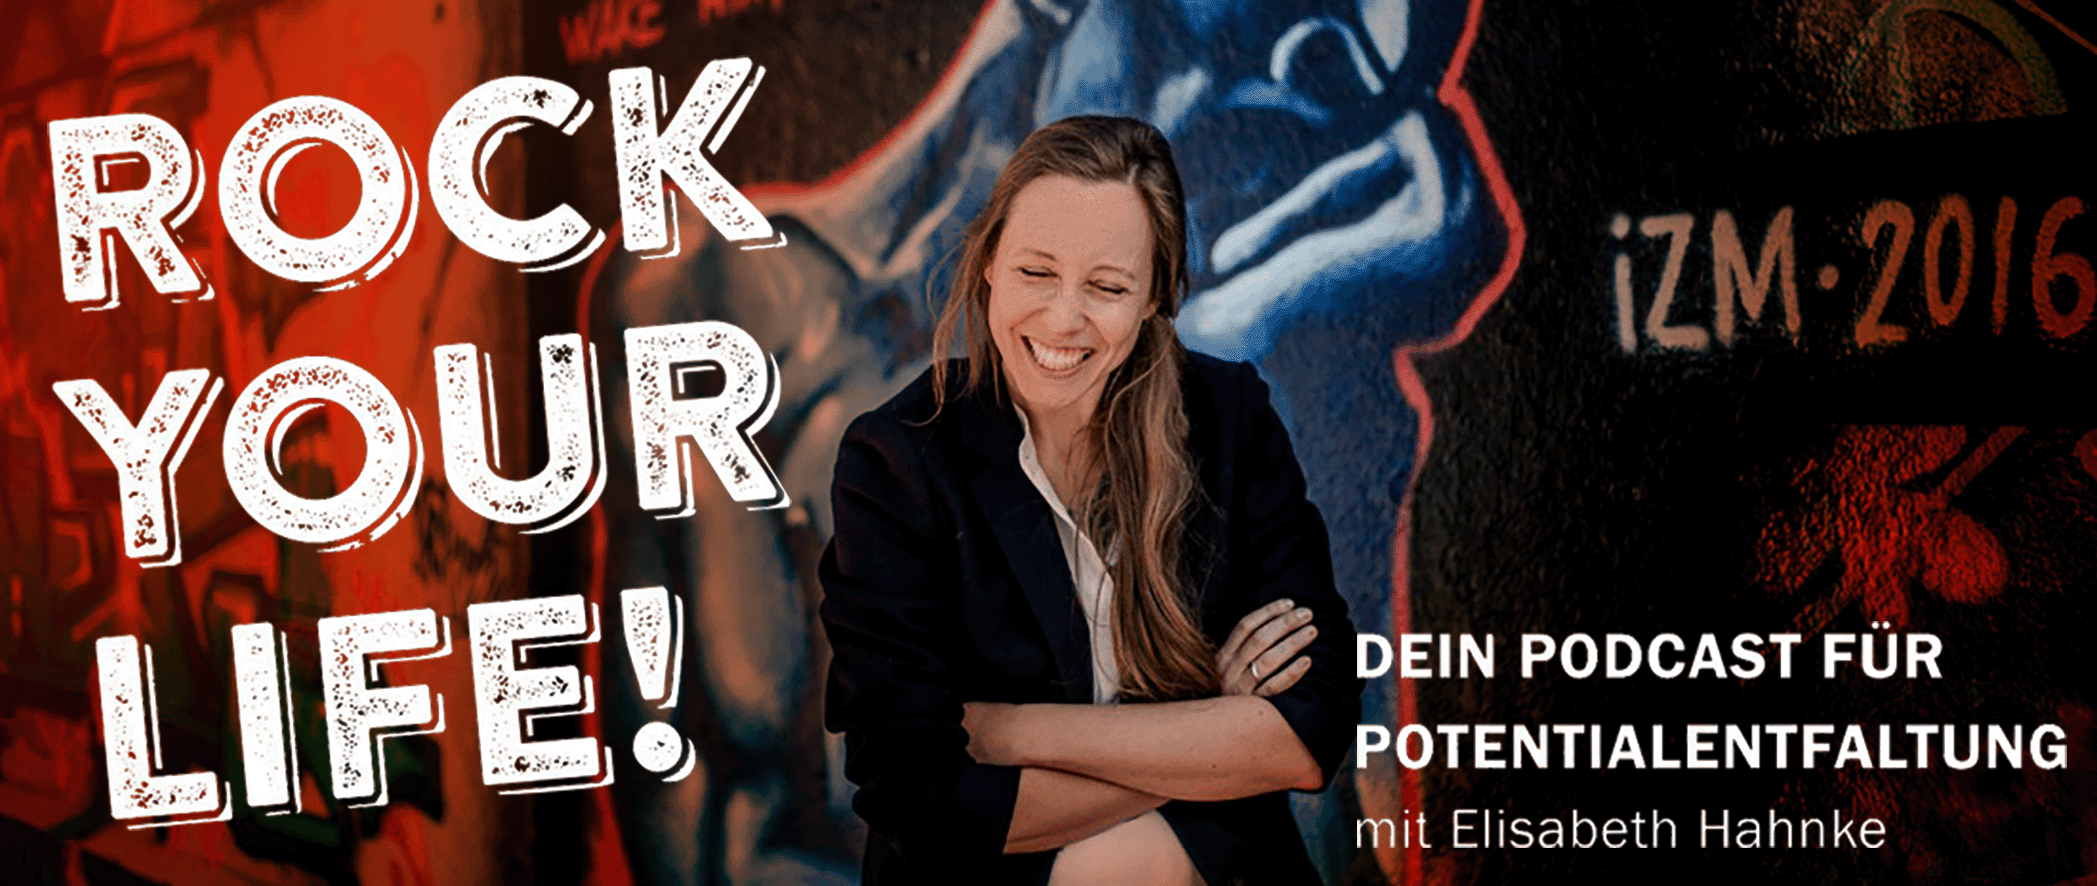 ROCK YOUR LIFE! Podcast Dein Podcast für Potentialentfaltung